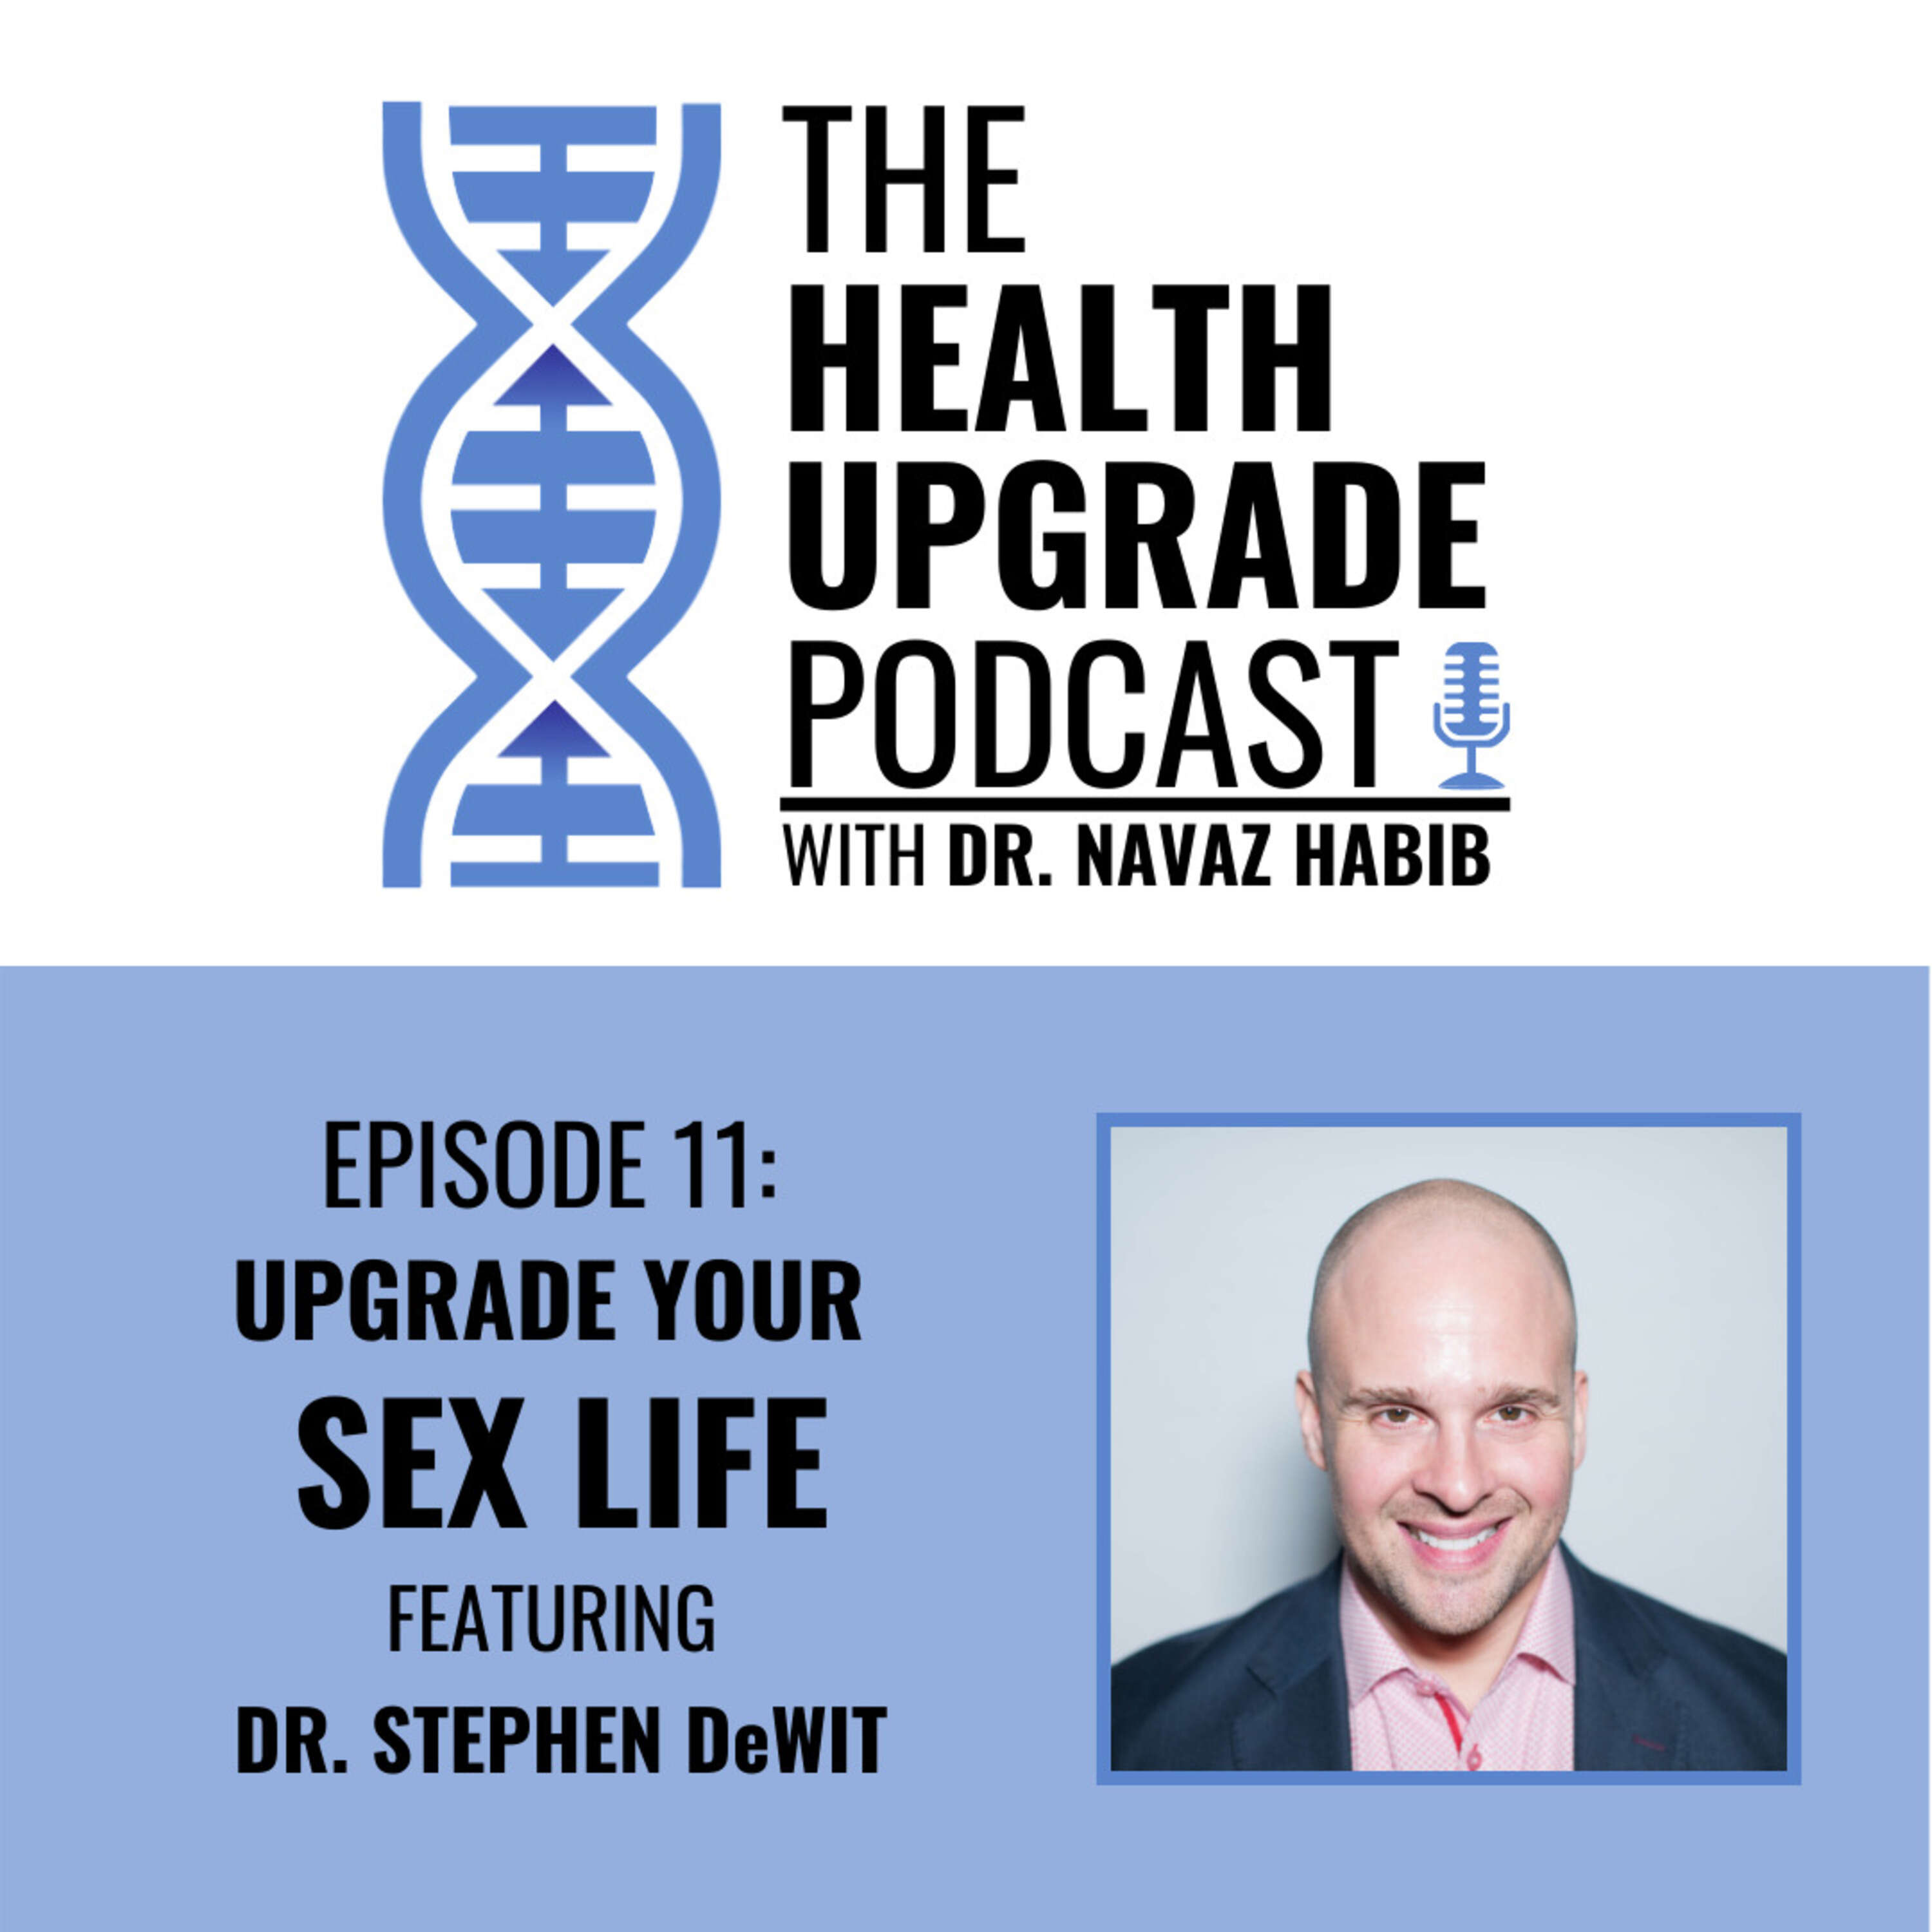 Upgrade your sex life - featuring dr. Stephen DeWIT